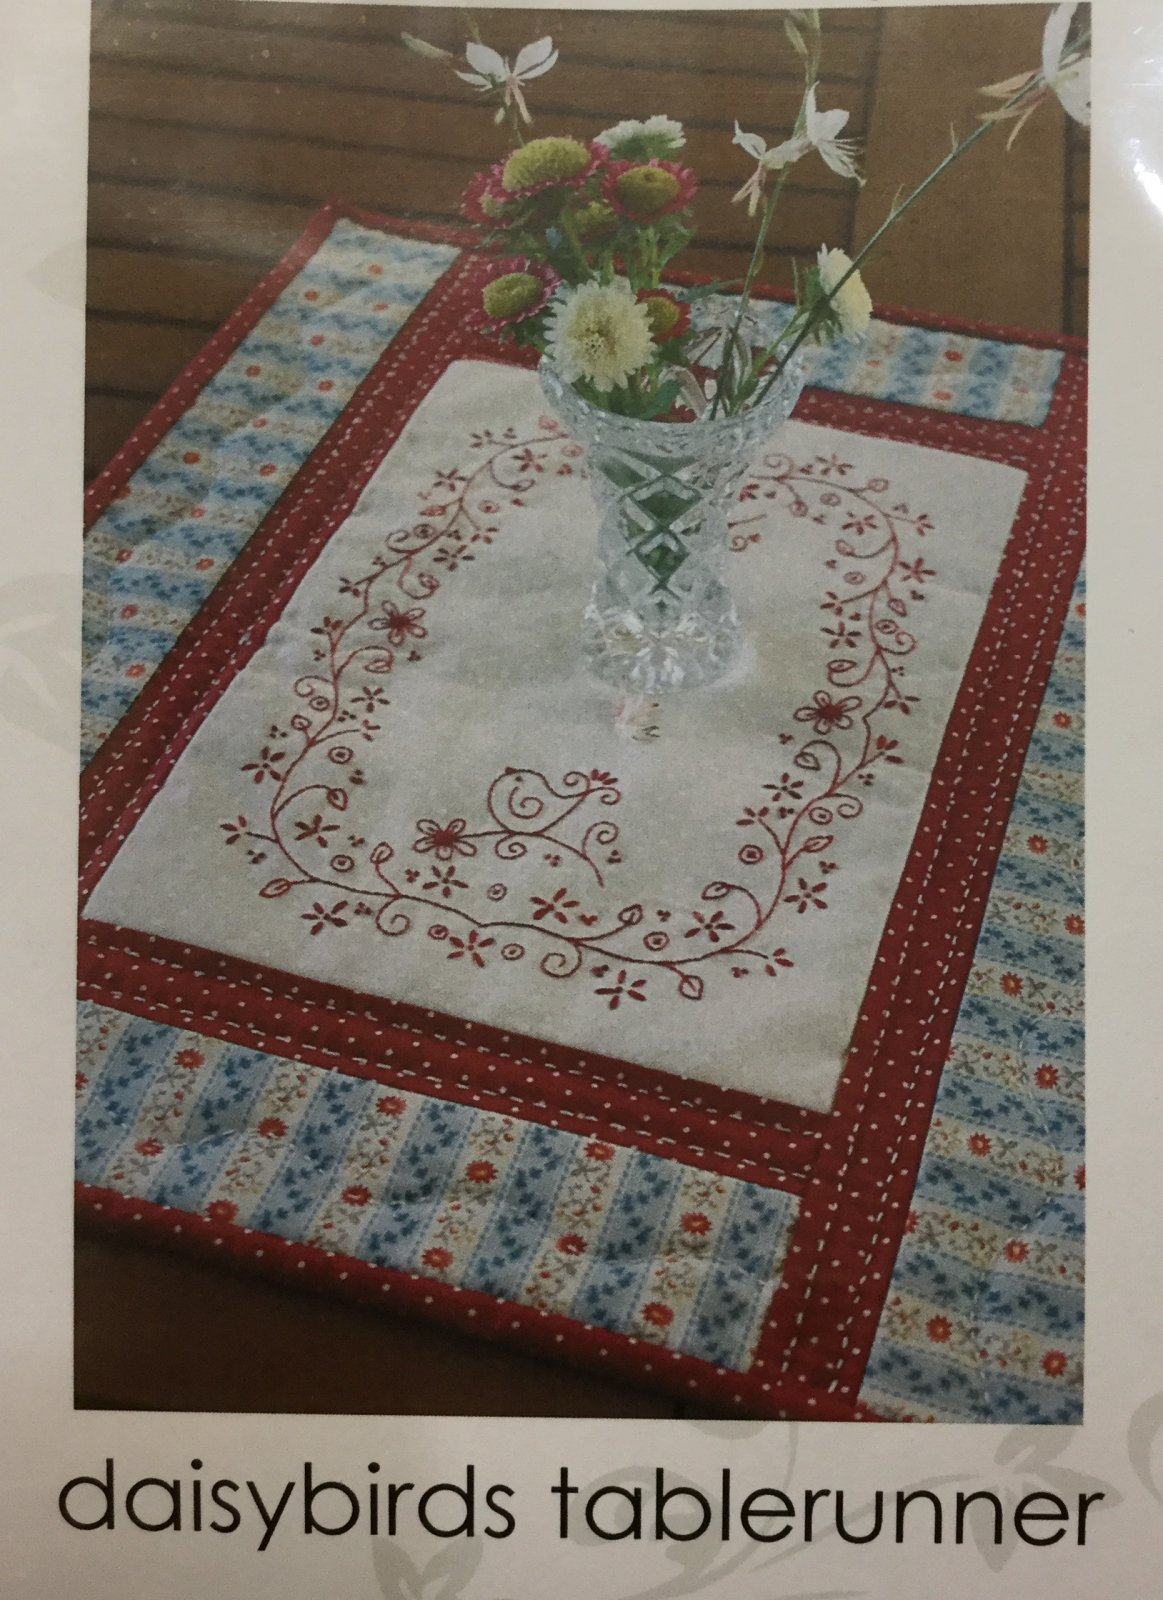 Daisybirds Tablerunner by Gail Pan